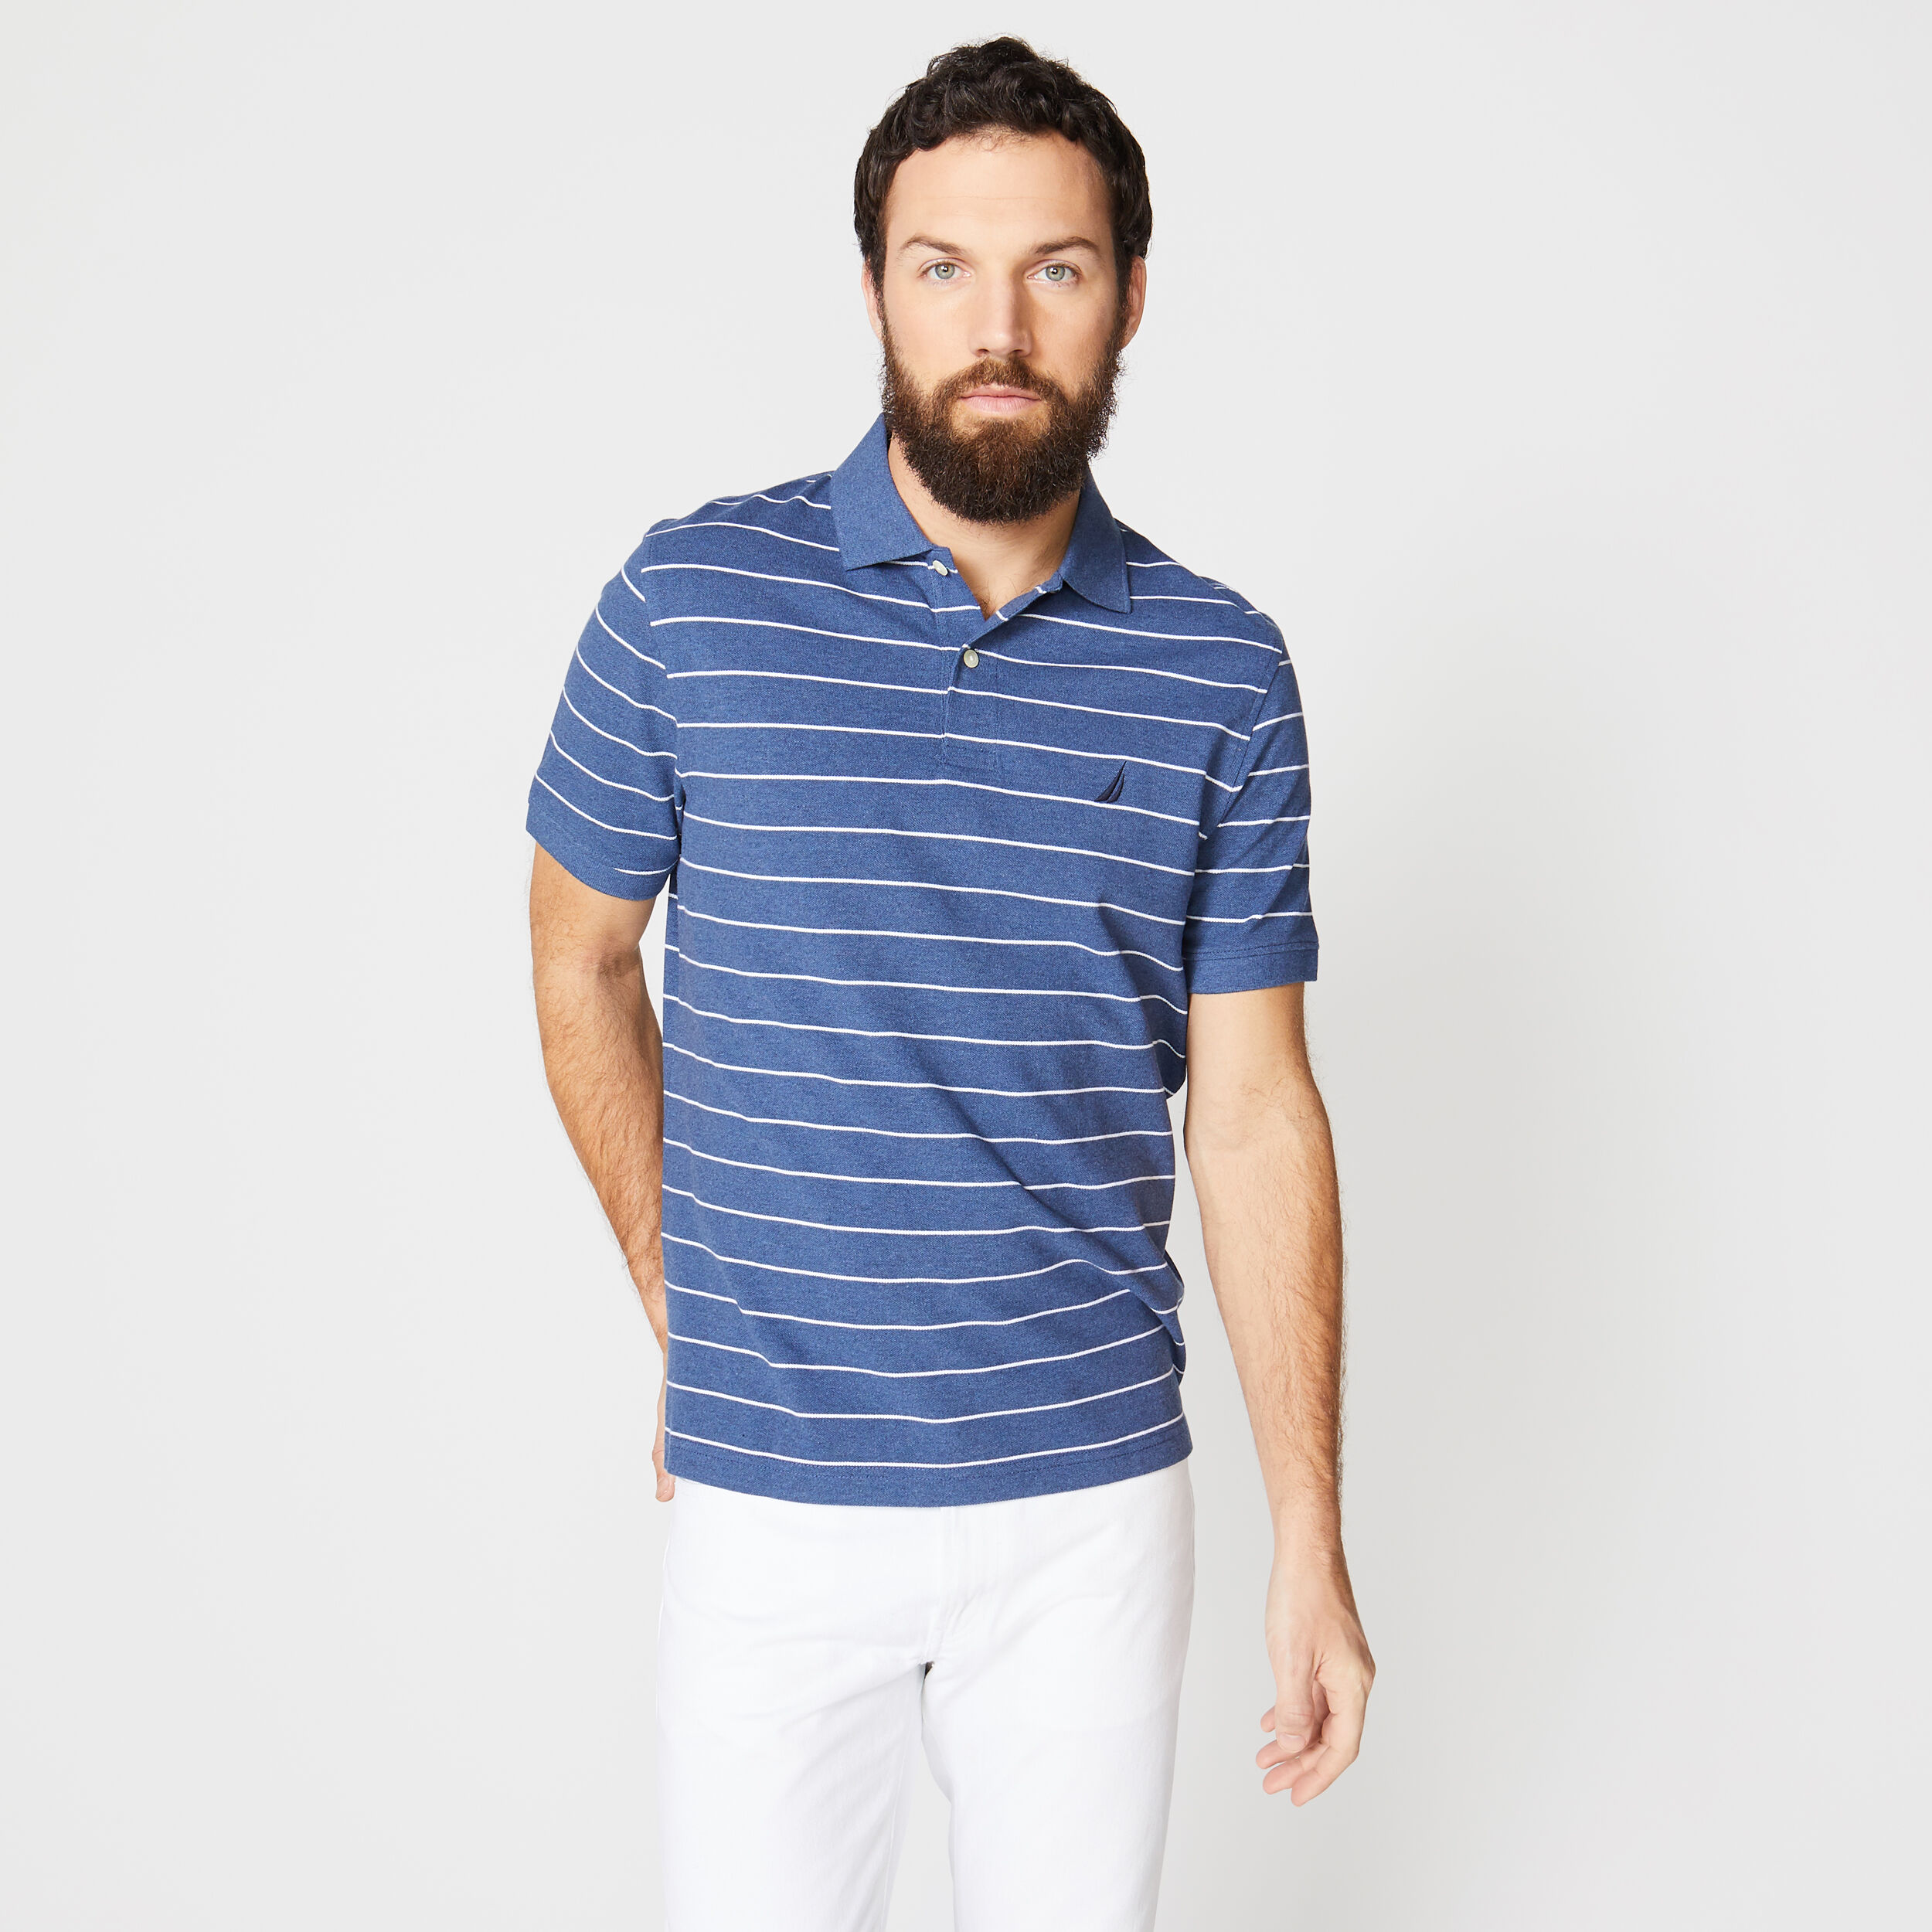 Nautica Men/'s Classic Fit Short Sleeve 100/% Cotton Rugby Stripe Polo Shirt B...